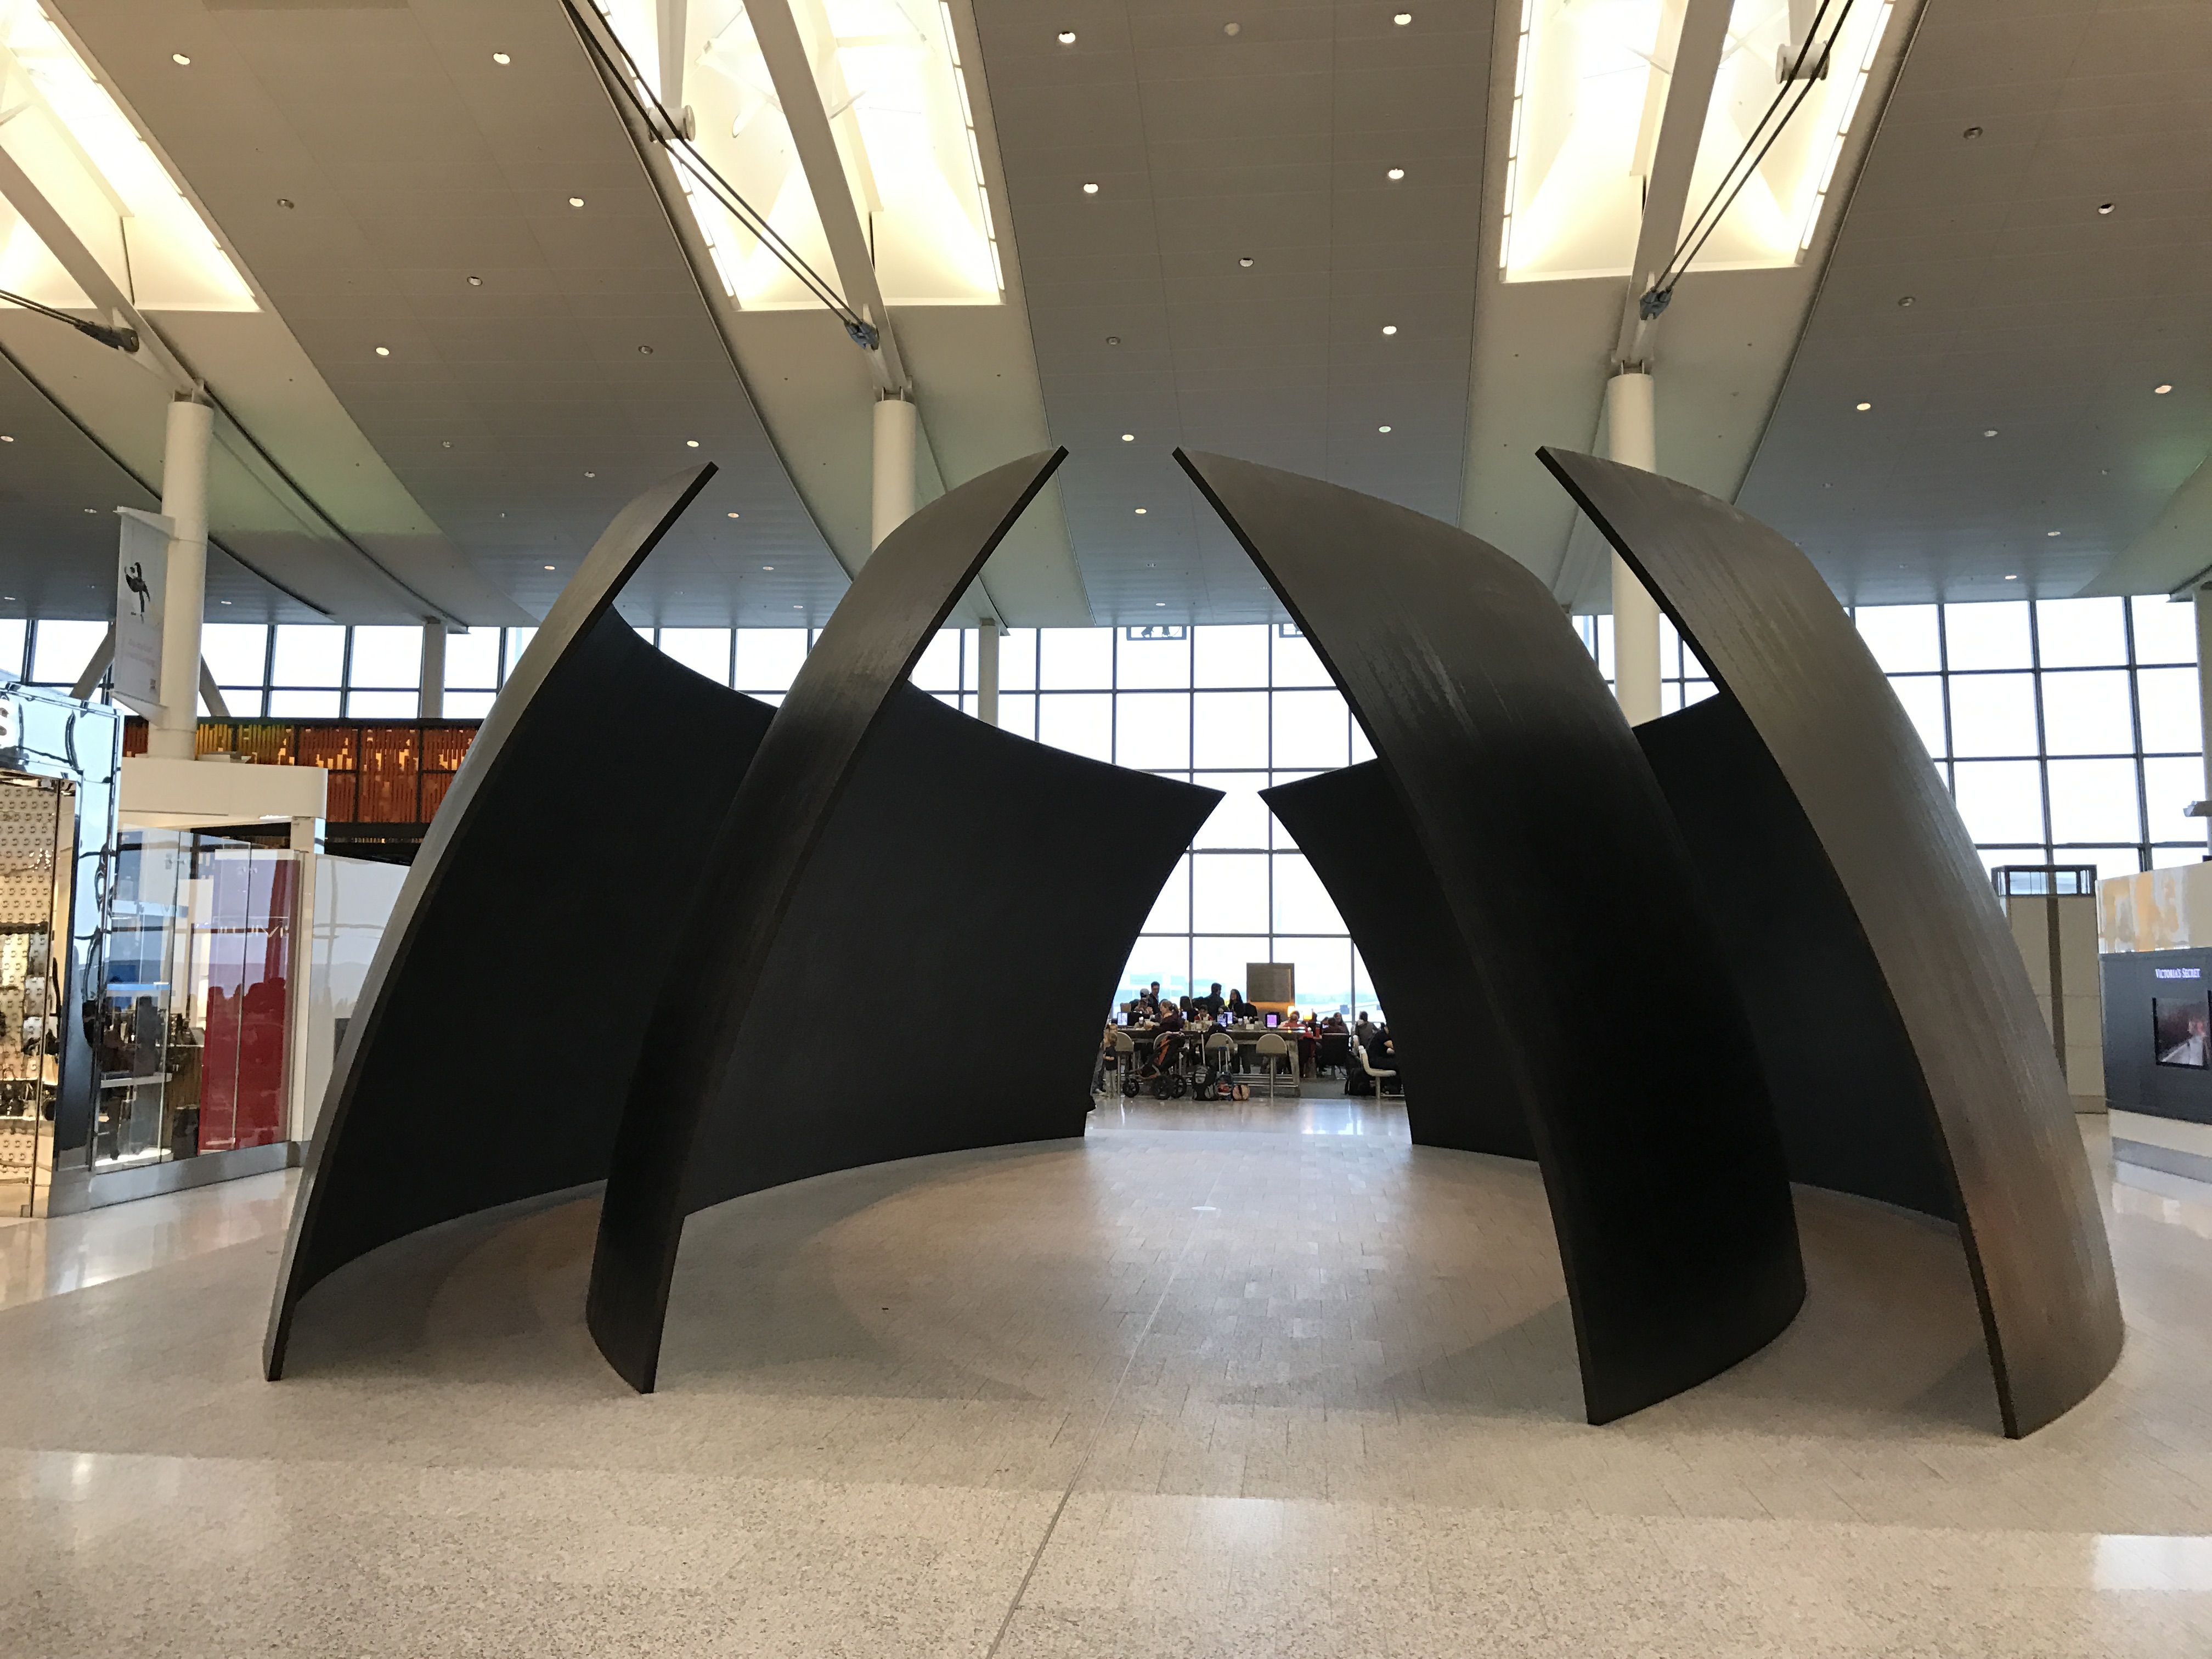 Dramatic sculpture at Toronto Pearson Airport